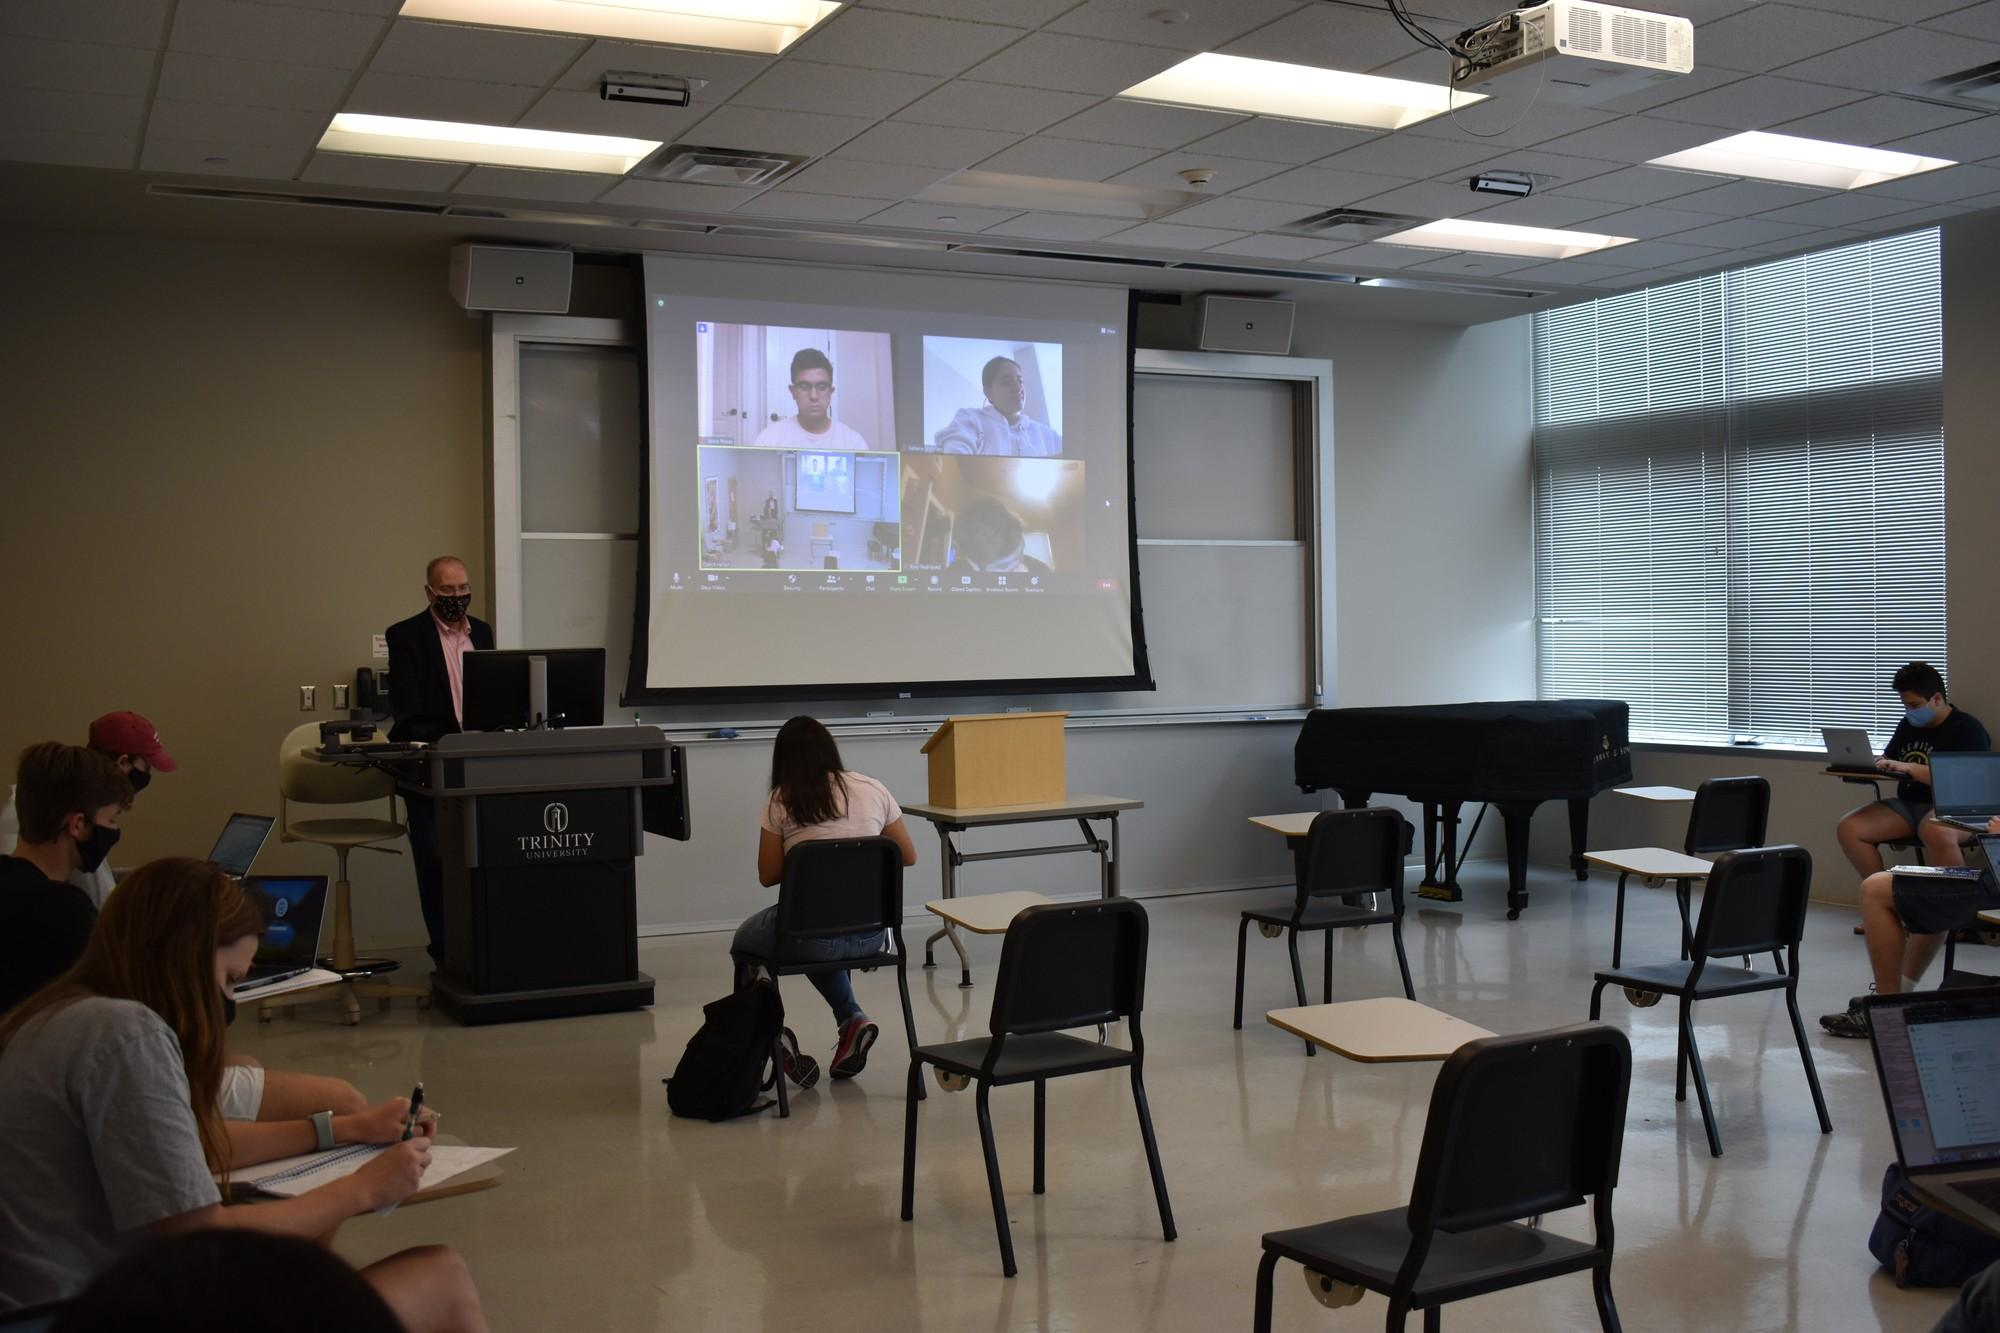 Dr. Heller teaching in a tiger flex style to both in-person and remote students. Remote students: Jesus Rosas, Rafaela Martinez, Tony Rodriguez. In-Person: Camille Abaya, Jacob Bruce, Jack Baker, David Prado and Emma Hagan Photo credit: Claire Sammons